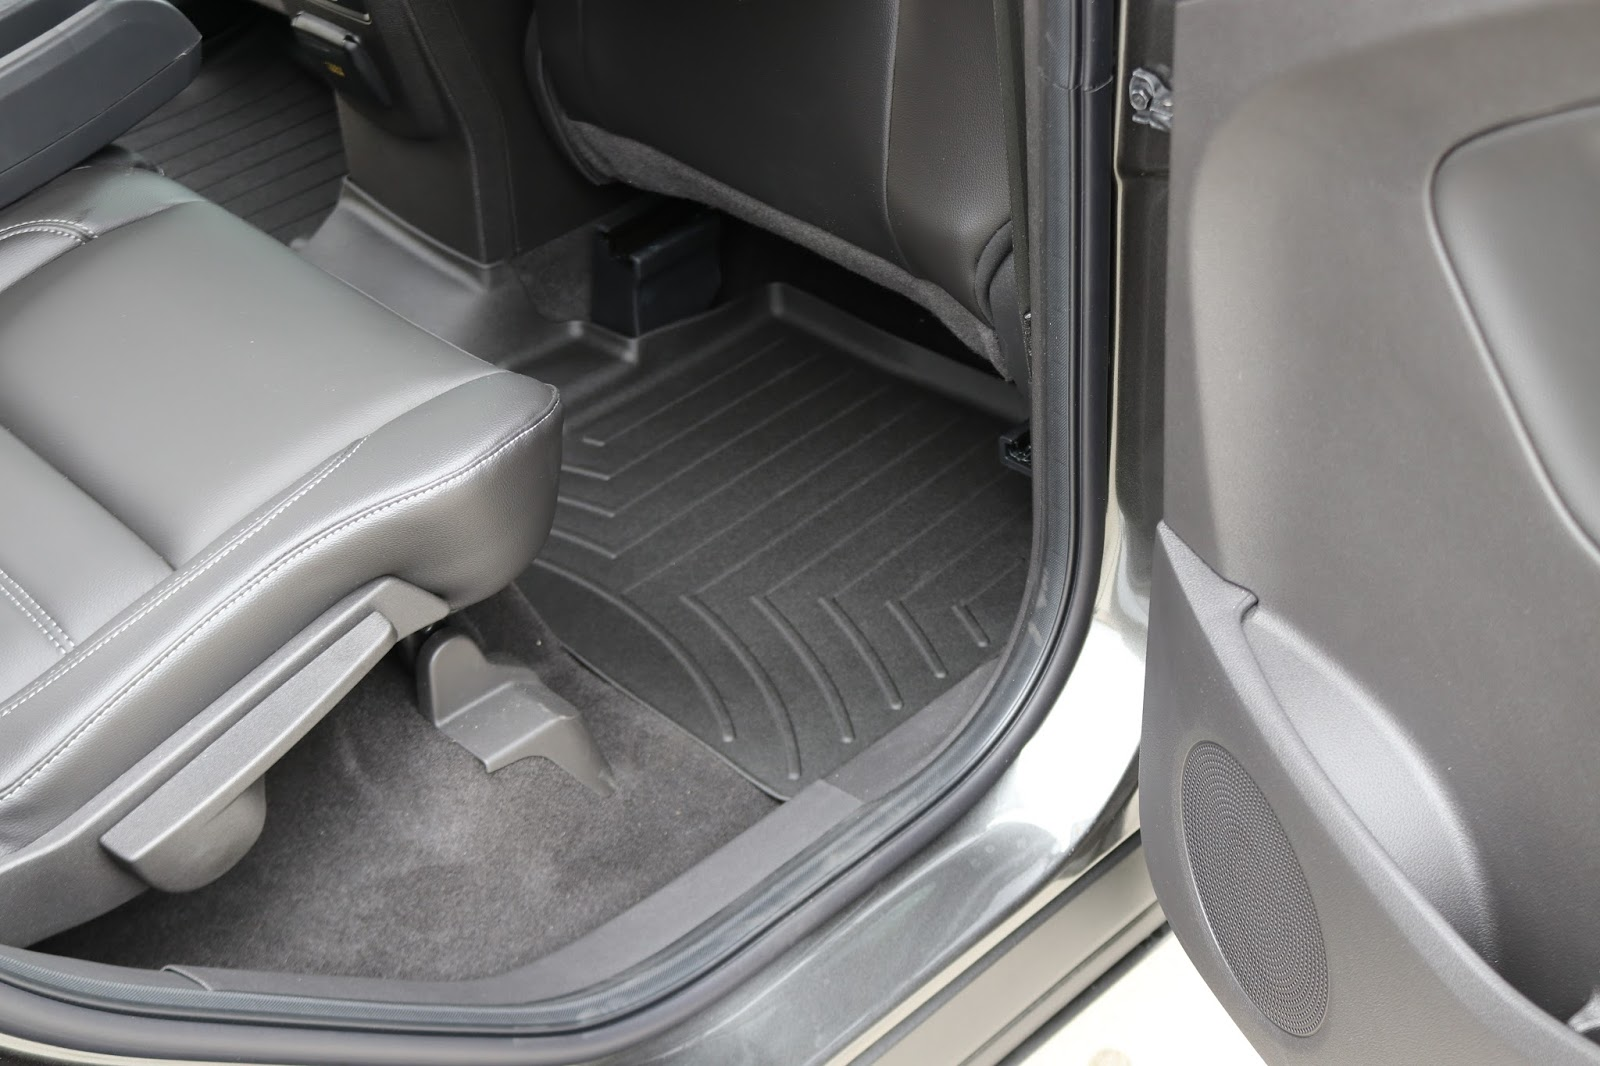 To protect the rear floor carpet from messy kids and employees we selected a custom fit weathertech digital fit floor liner these molded liners have a